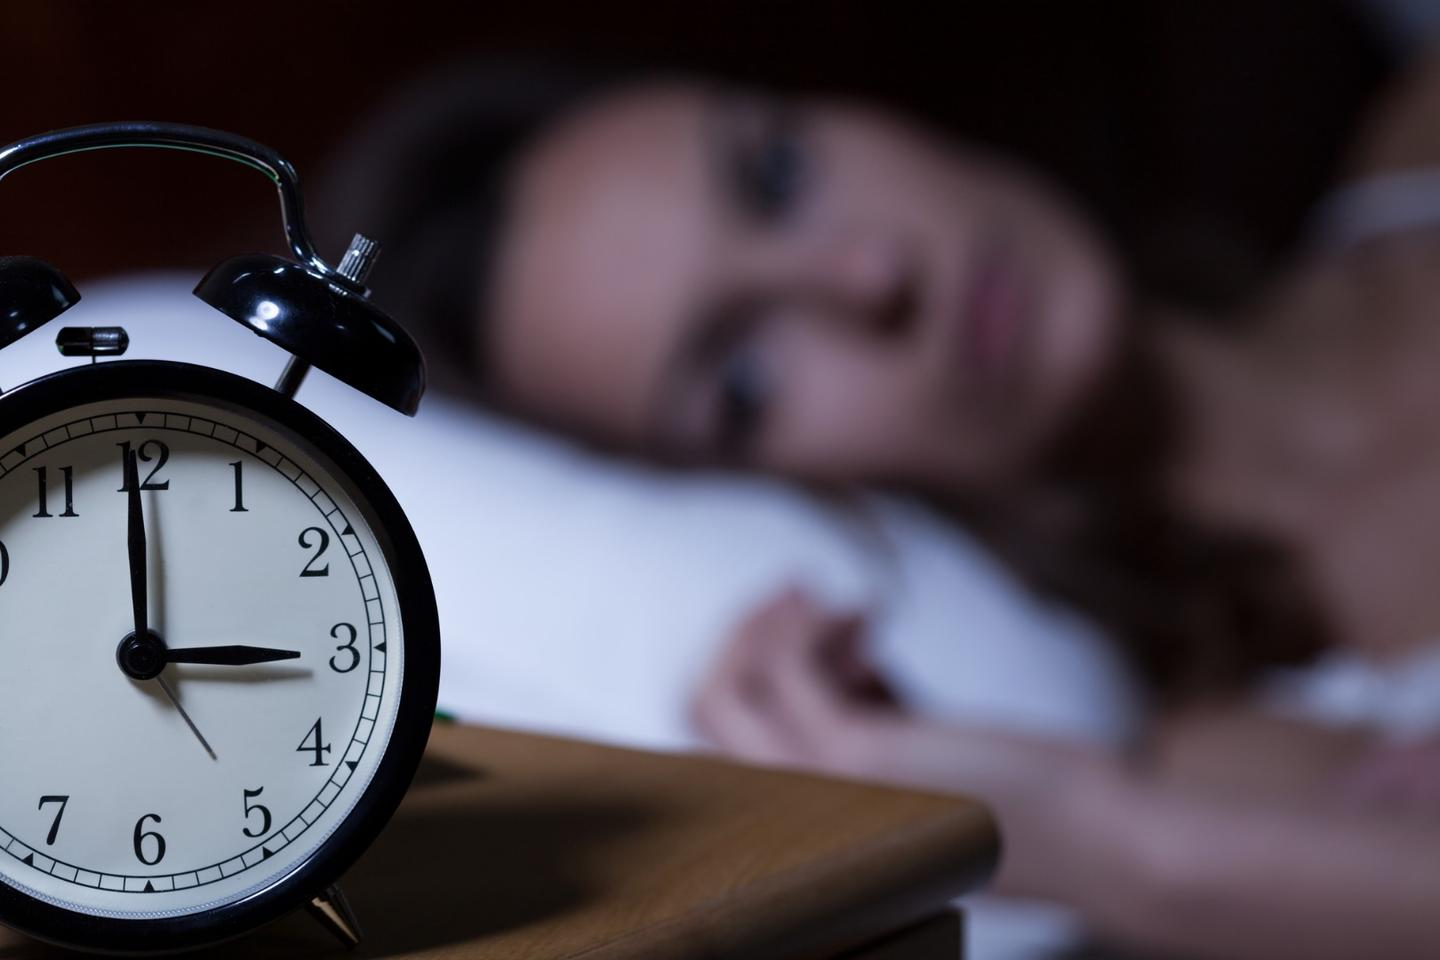 Just one night of sleep deprivation has been shown to increase the levels of amyloid-beta in the brain